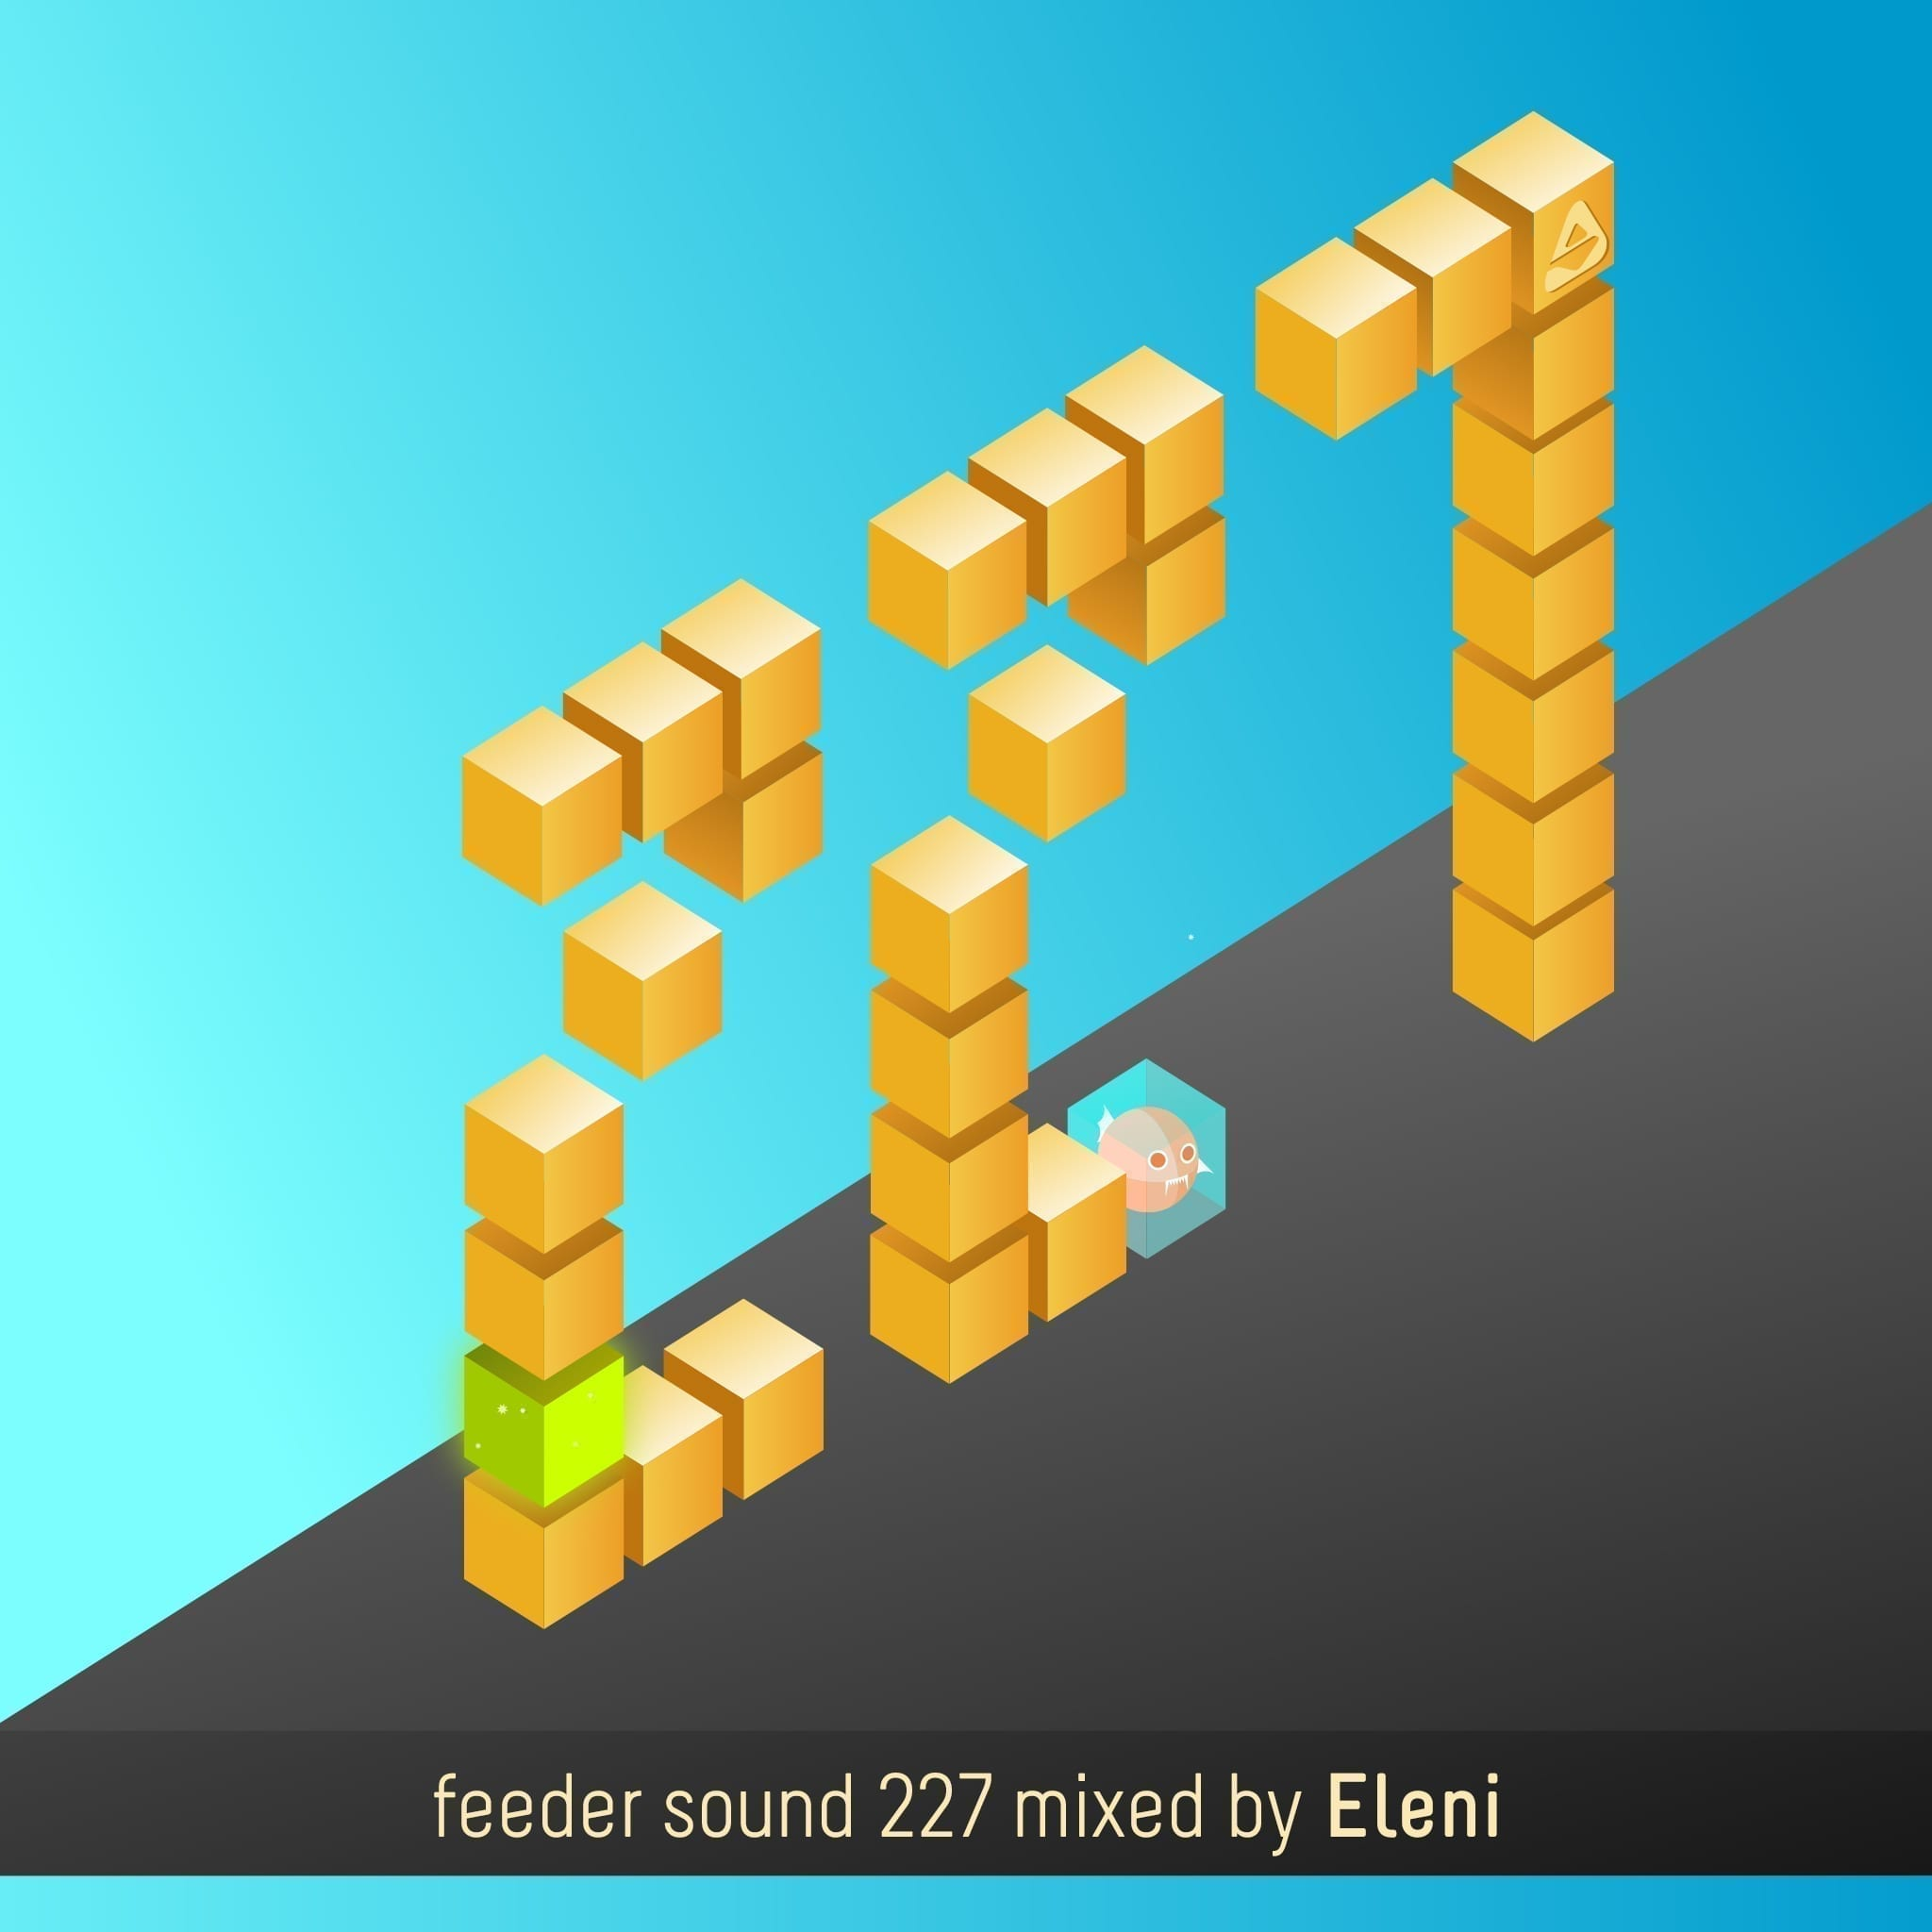 feeder sound 227 mixed by Eleni article-cover